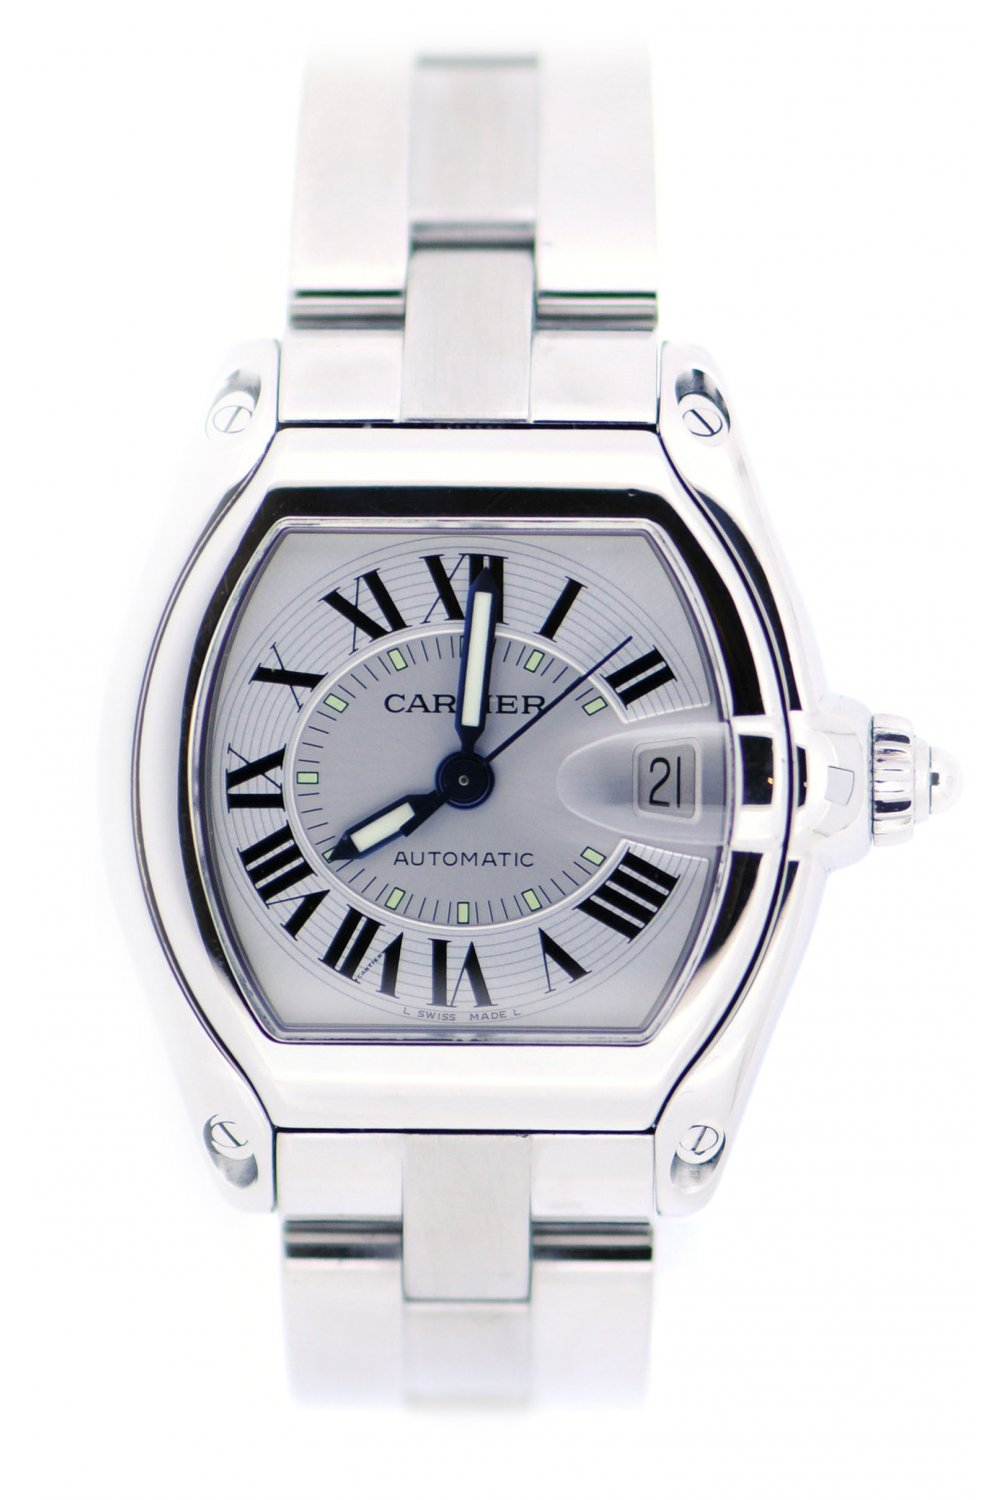 cartier second hand cartier roadster automatic watch cartier from eric g milton ltd uk. Black Bedroom Furniture Sets. Home Design Ideas